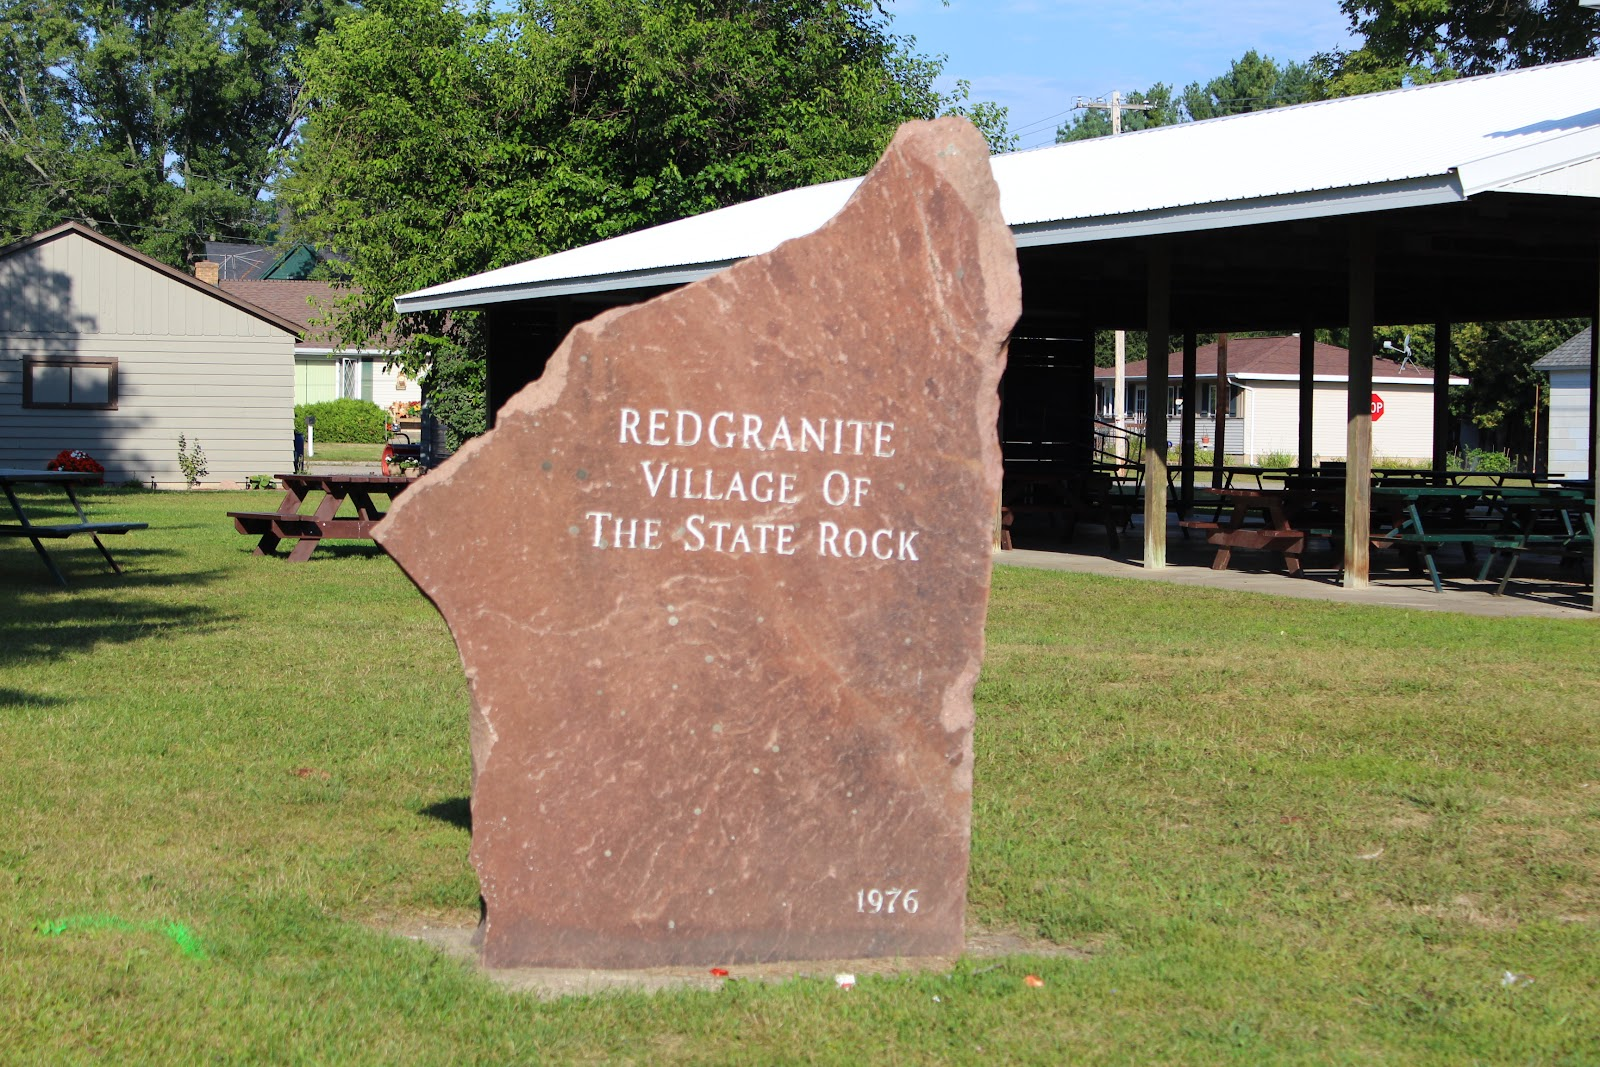 Wisconsin Red Granite Stone : Wisconsin historical markers redgranite village of the